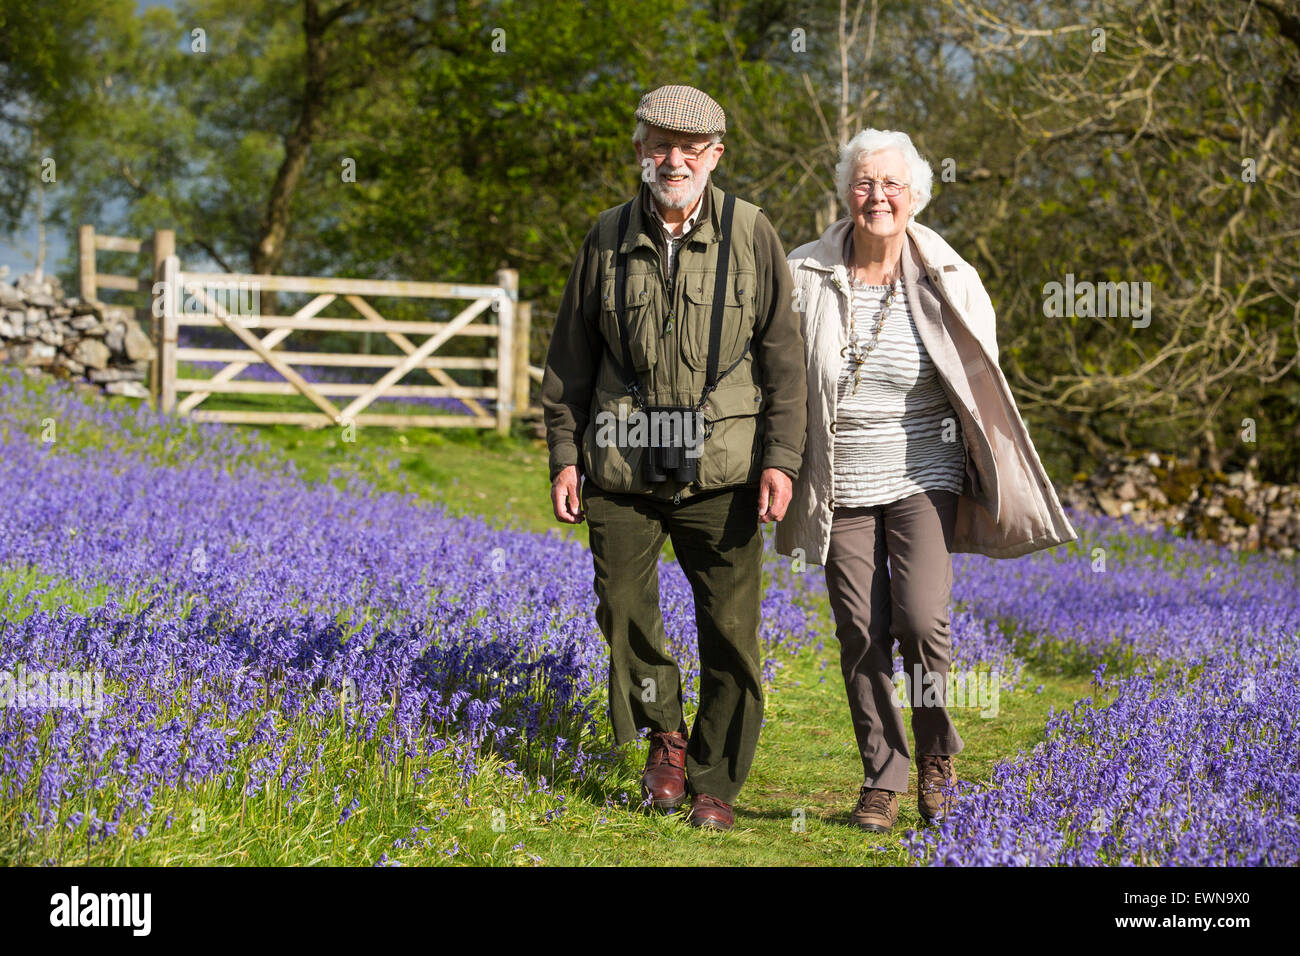 An old couple walking through Bluebells above Austwick in the Yorkshire Dales, UK. - Stock Image